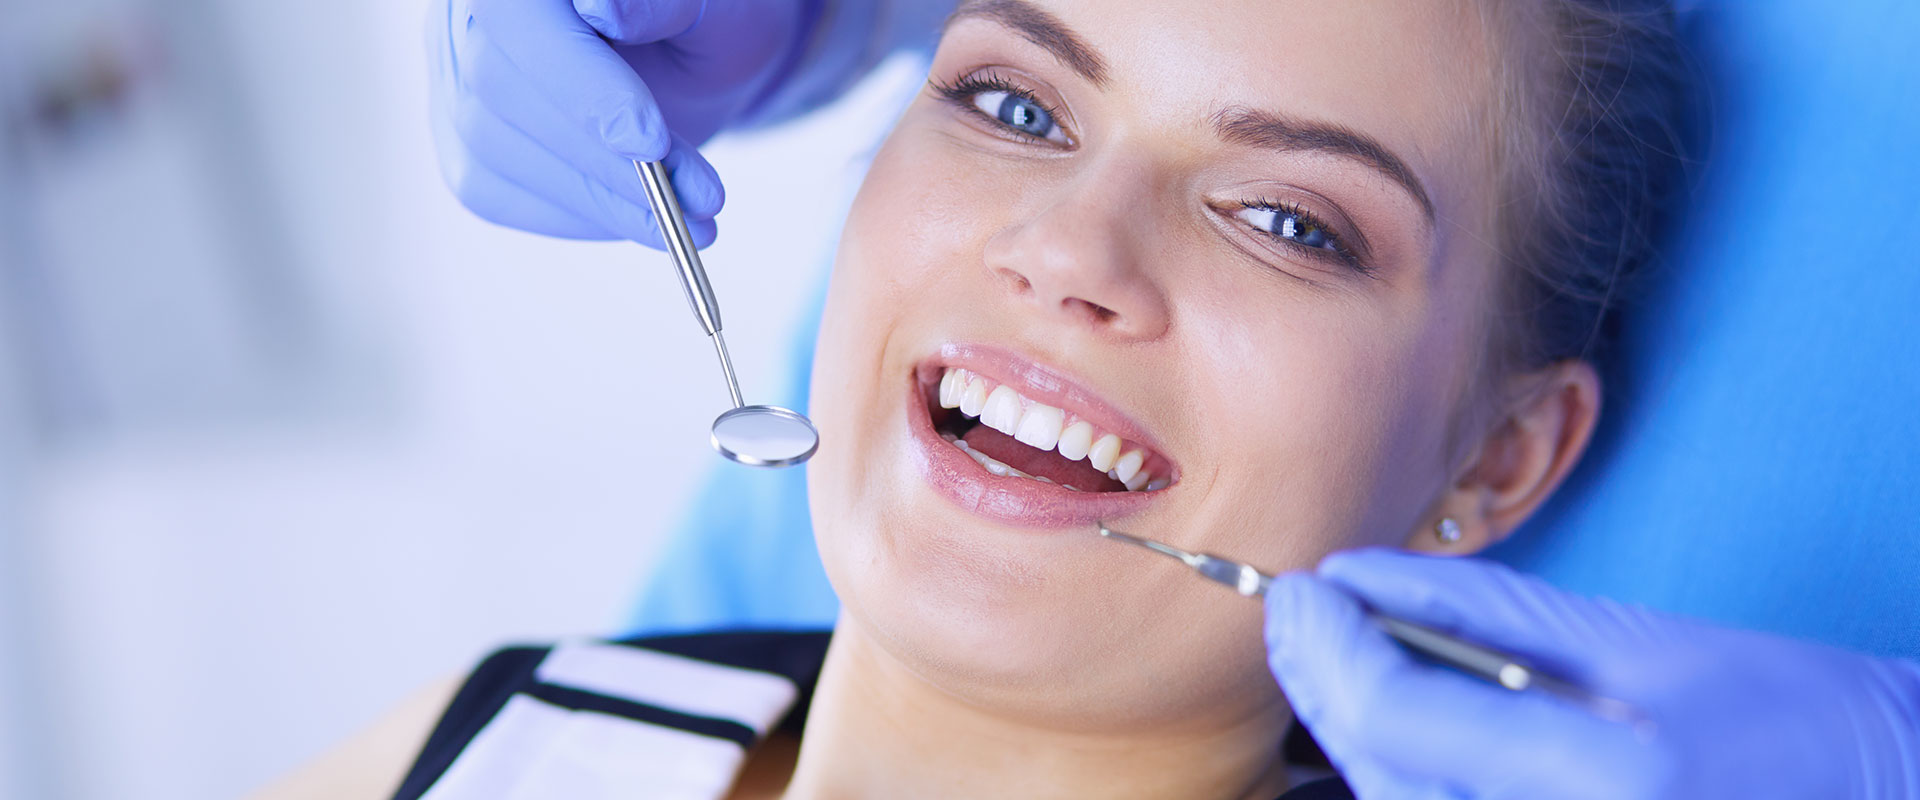 A woman is having dental check-up